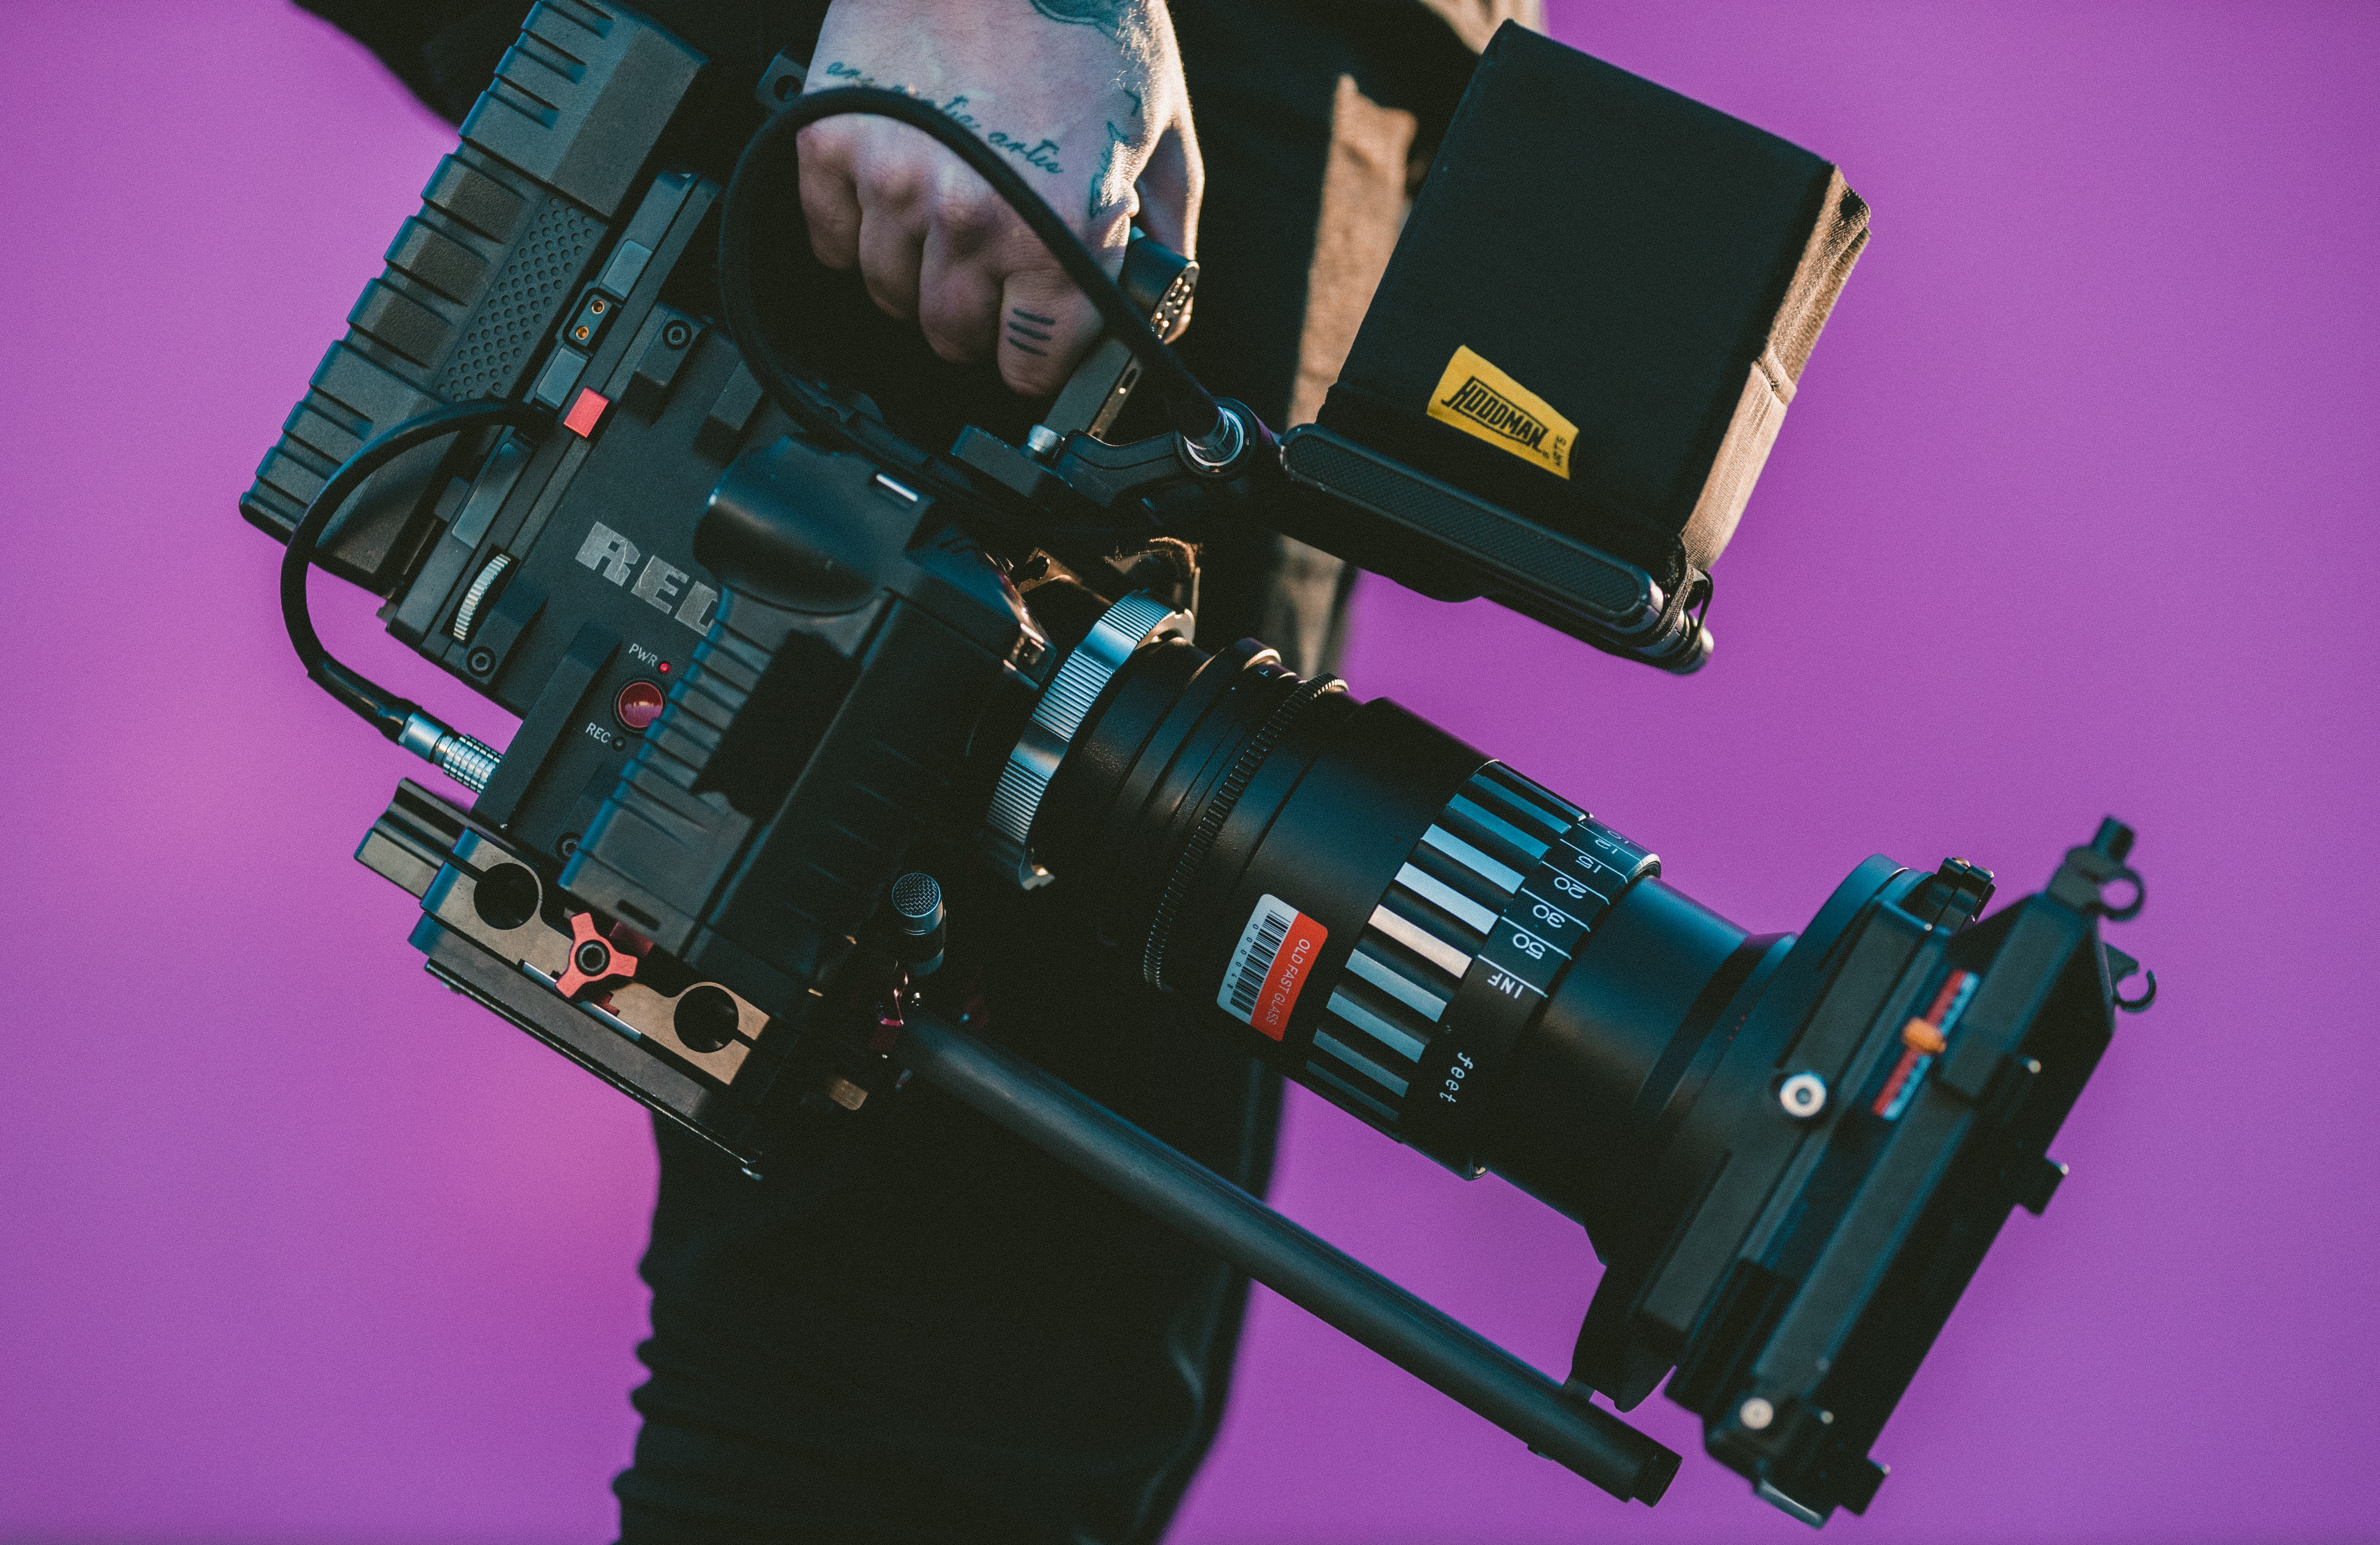 A close-up of a man's hand holding a RED video camera against a purple background